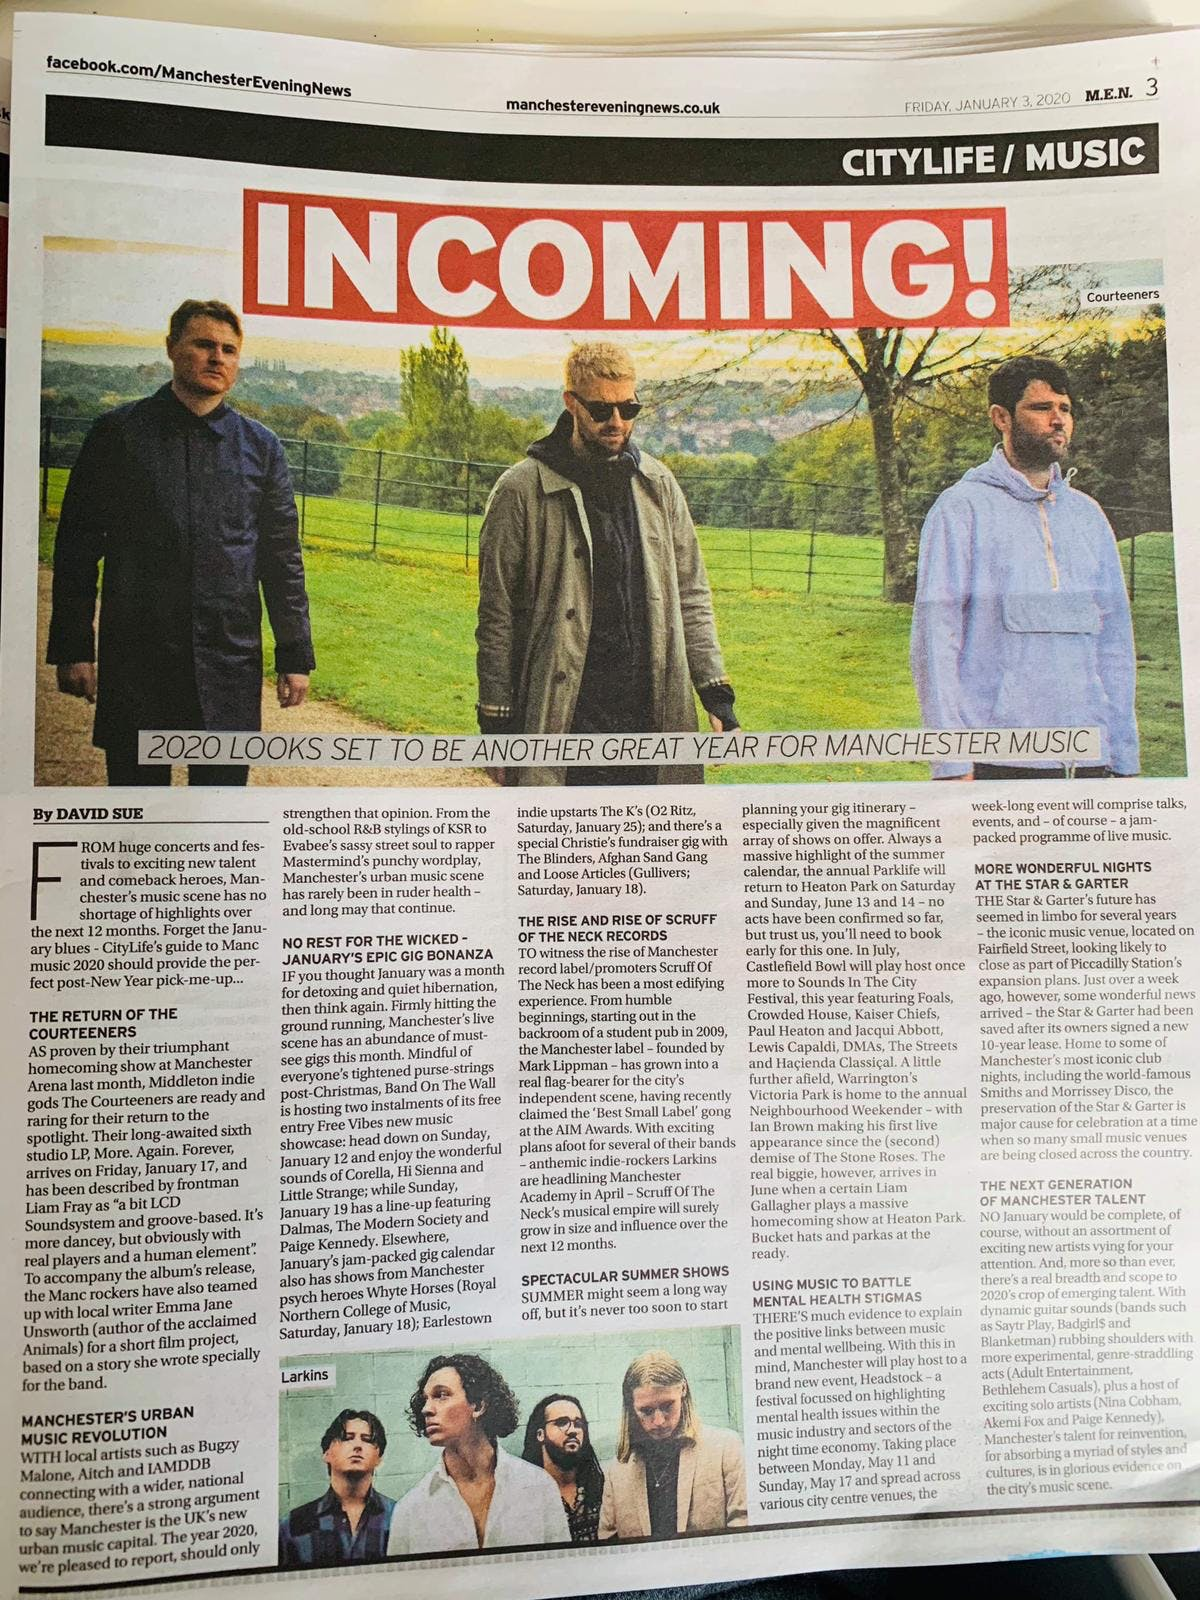 The rise and rise of scruff of the neck records – 'Manchester Evening News'